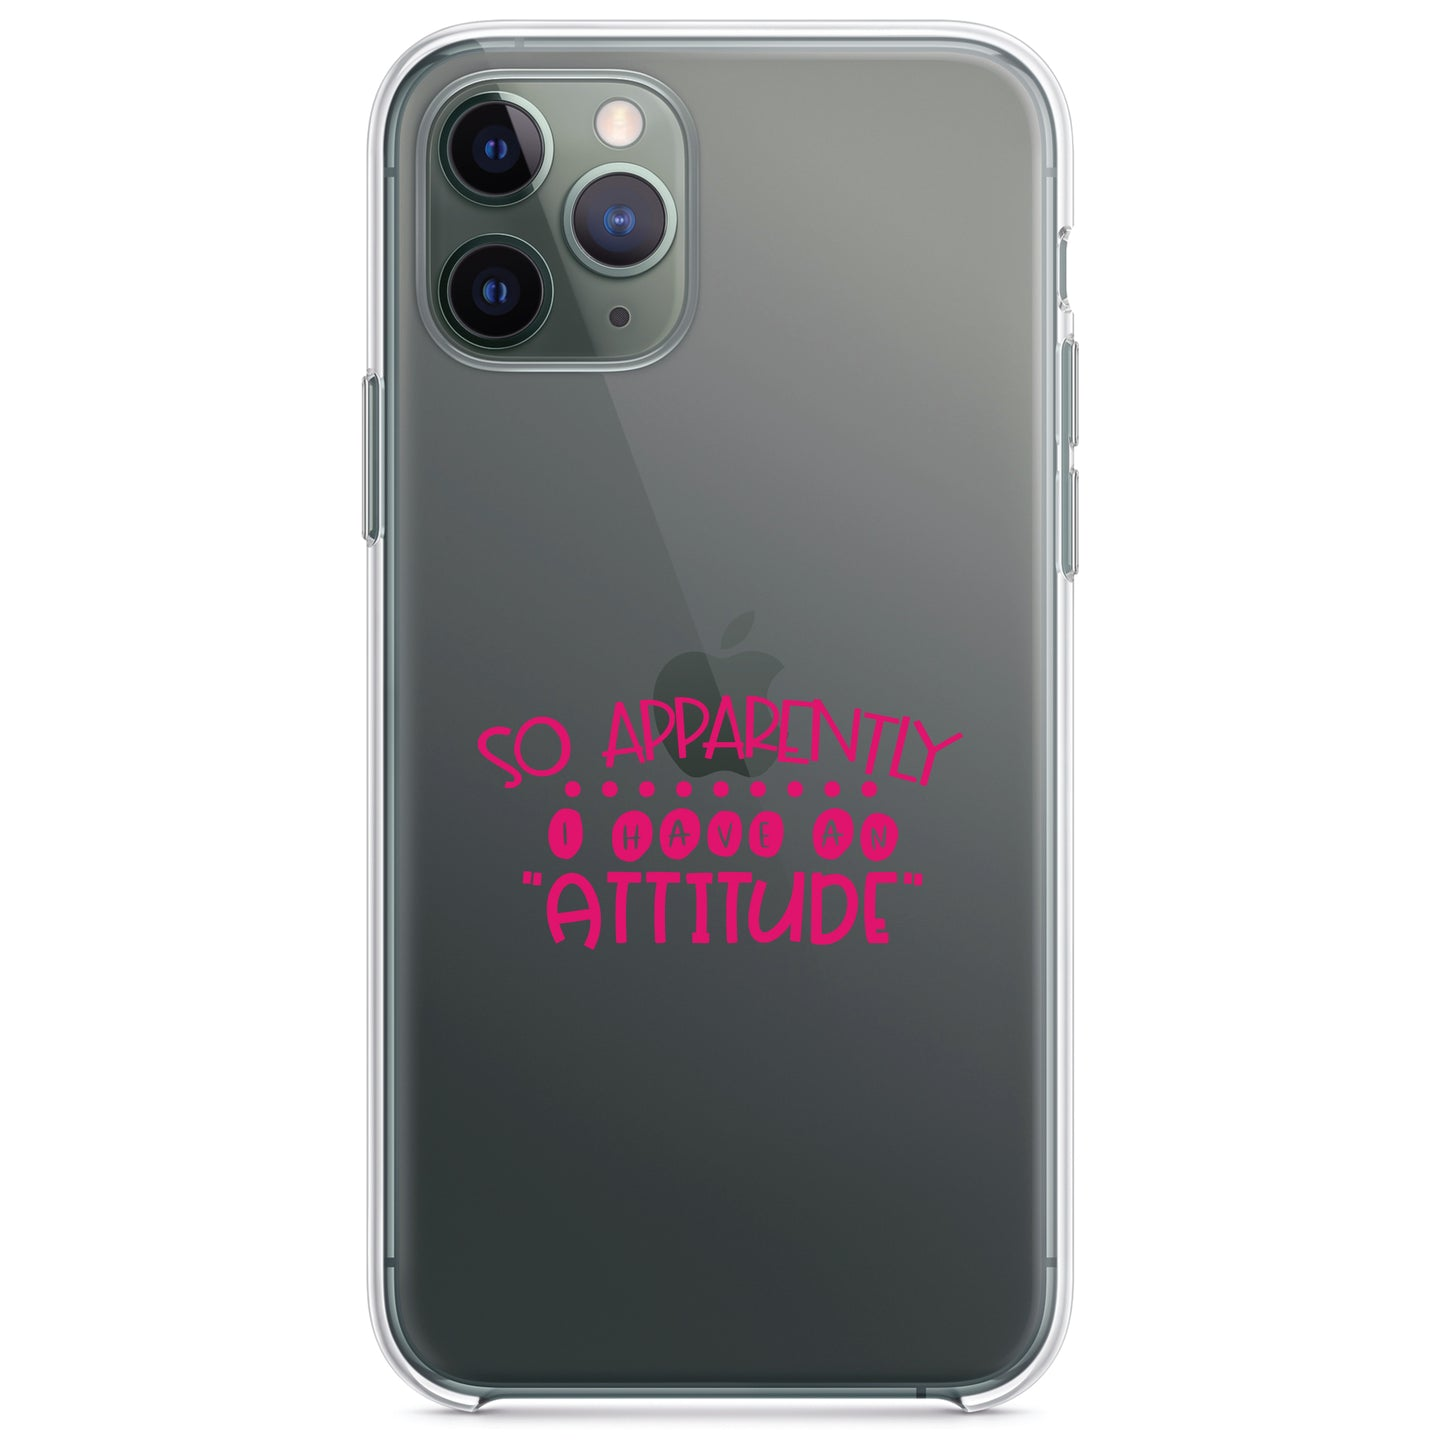 DistinctInk® Clear Shockproof Hybrid Case for Apple iPhone / Samsung Galaxy / Google Pixel - So Apparently I Have An Attitude - Pink